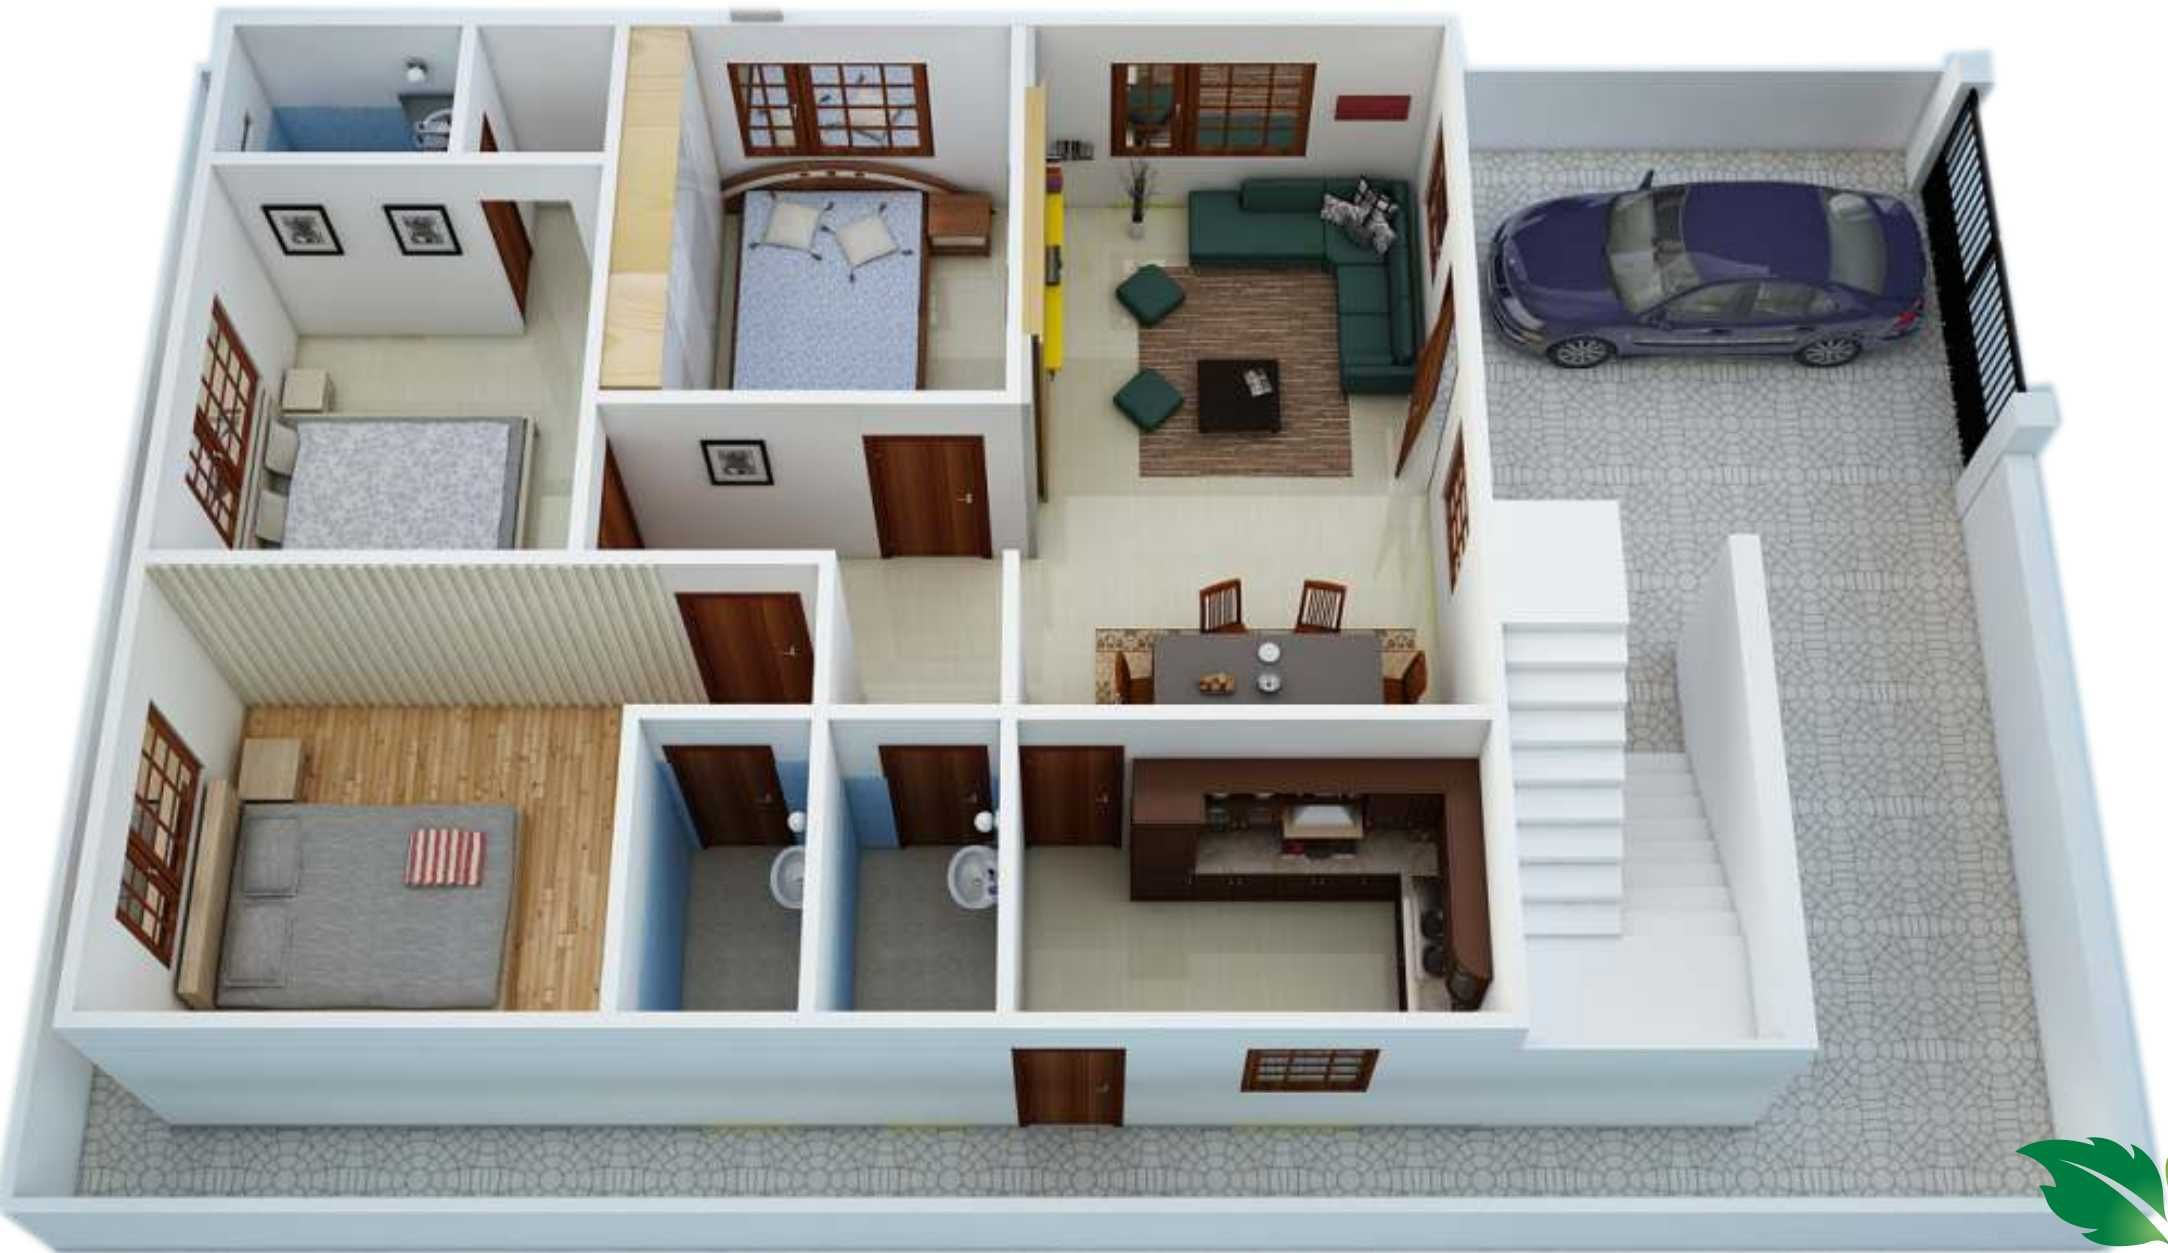 1800 Sq Ft House Plans With Walkout Basement In 2020 1200 Sq Ft House Small House Design House Plans